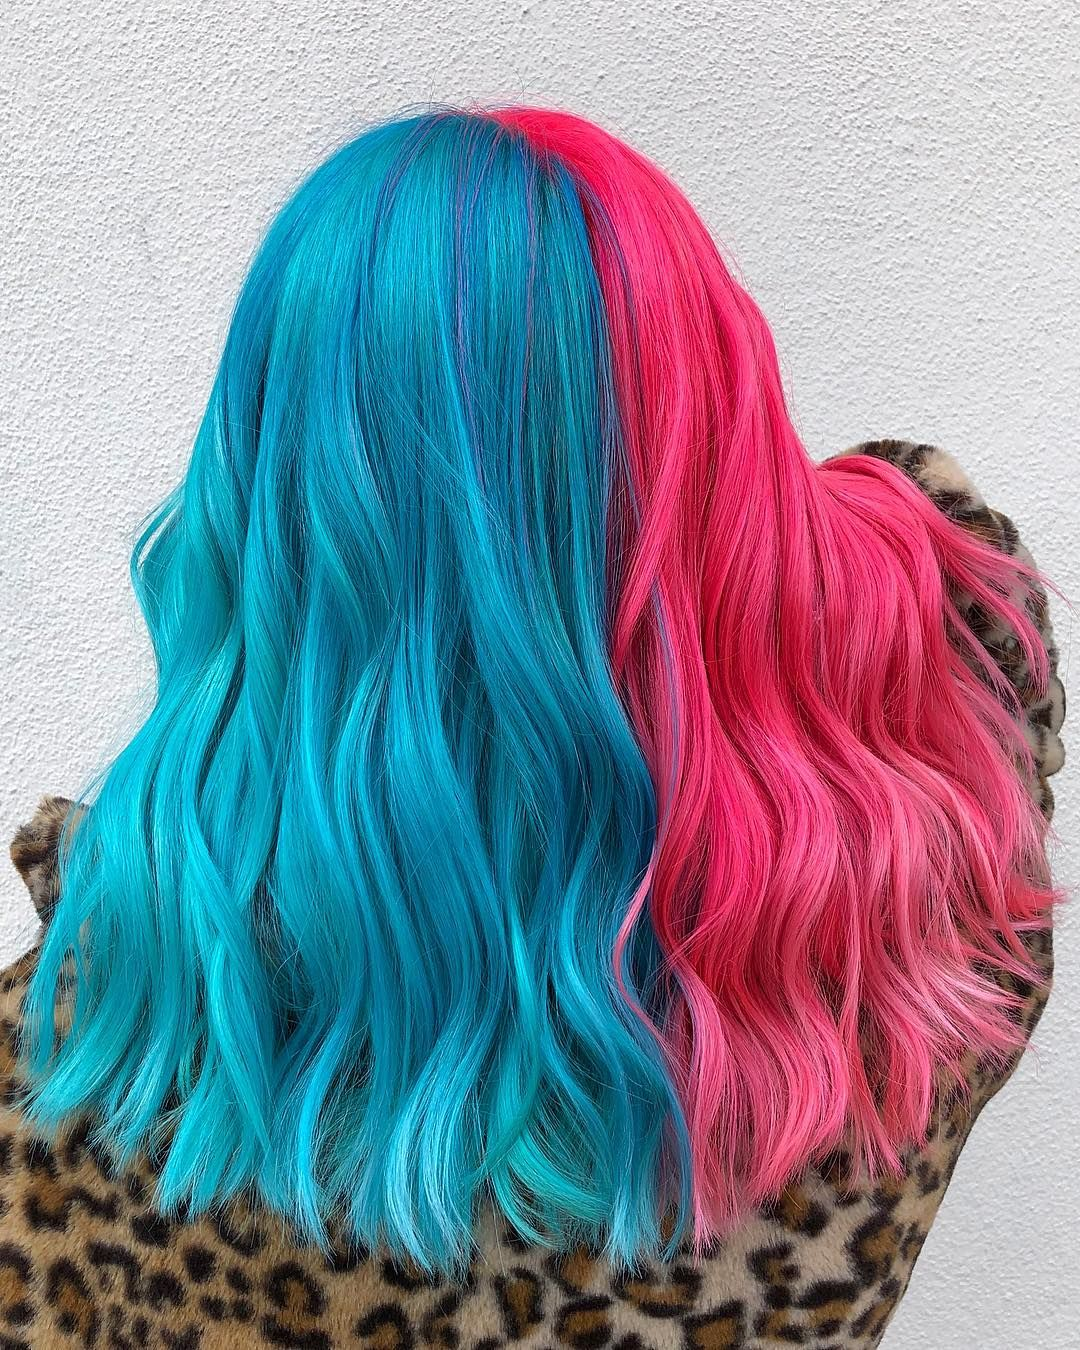 Bambi Balayage Color On Instagram Blue Raspberry Bubblegum